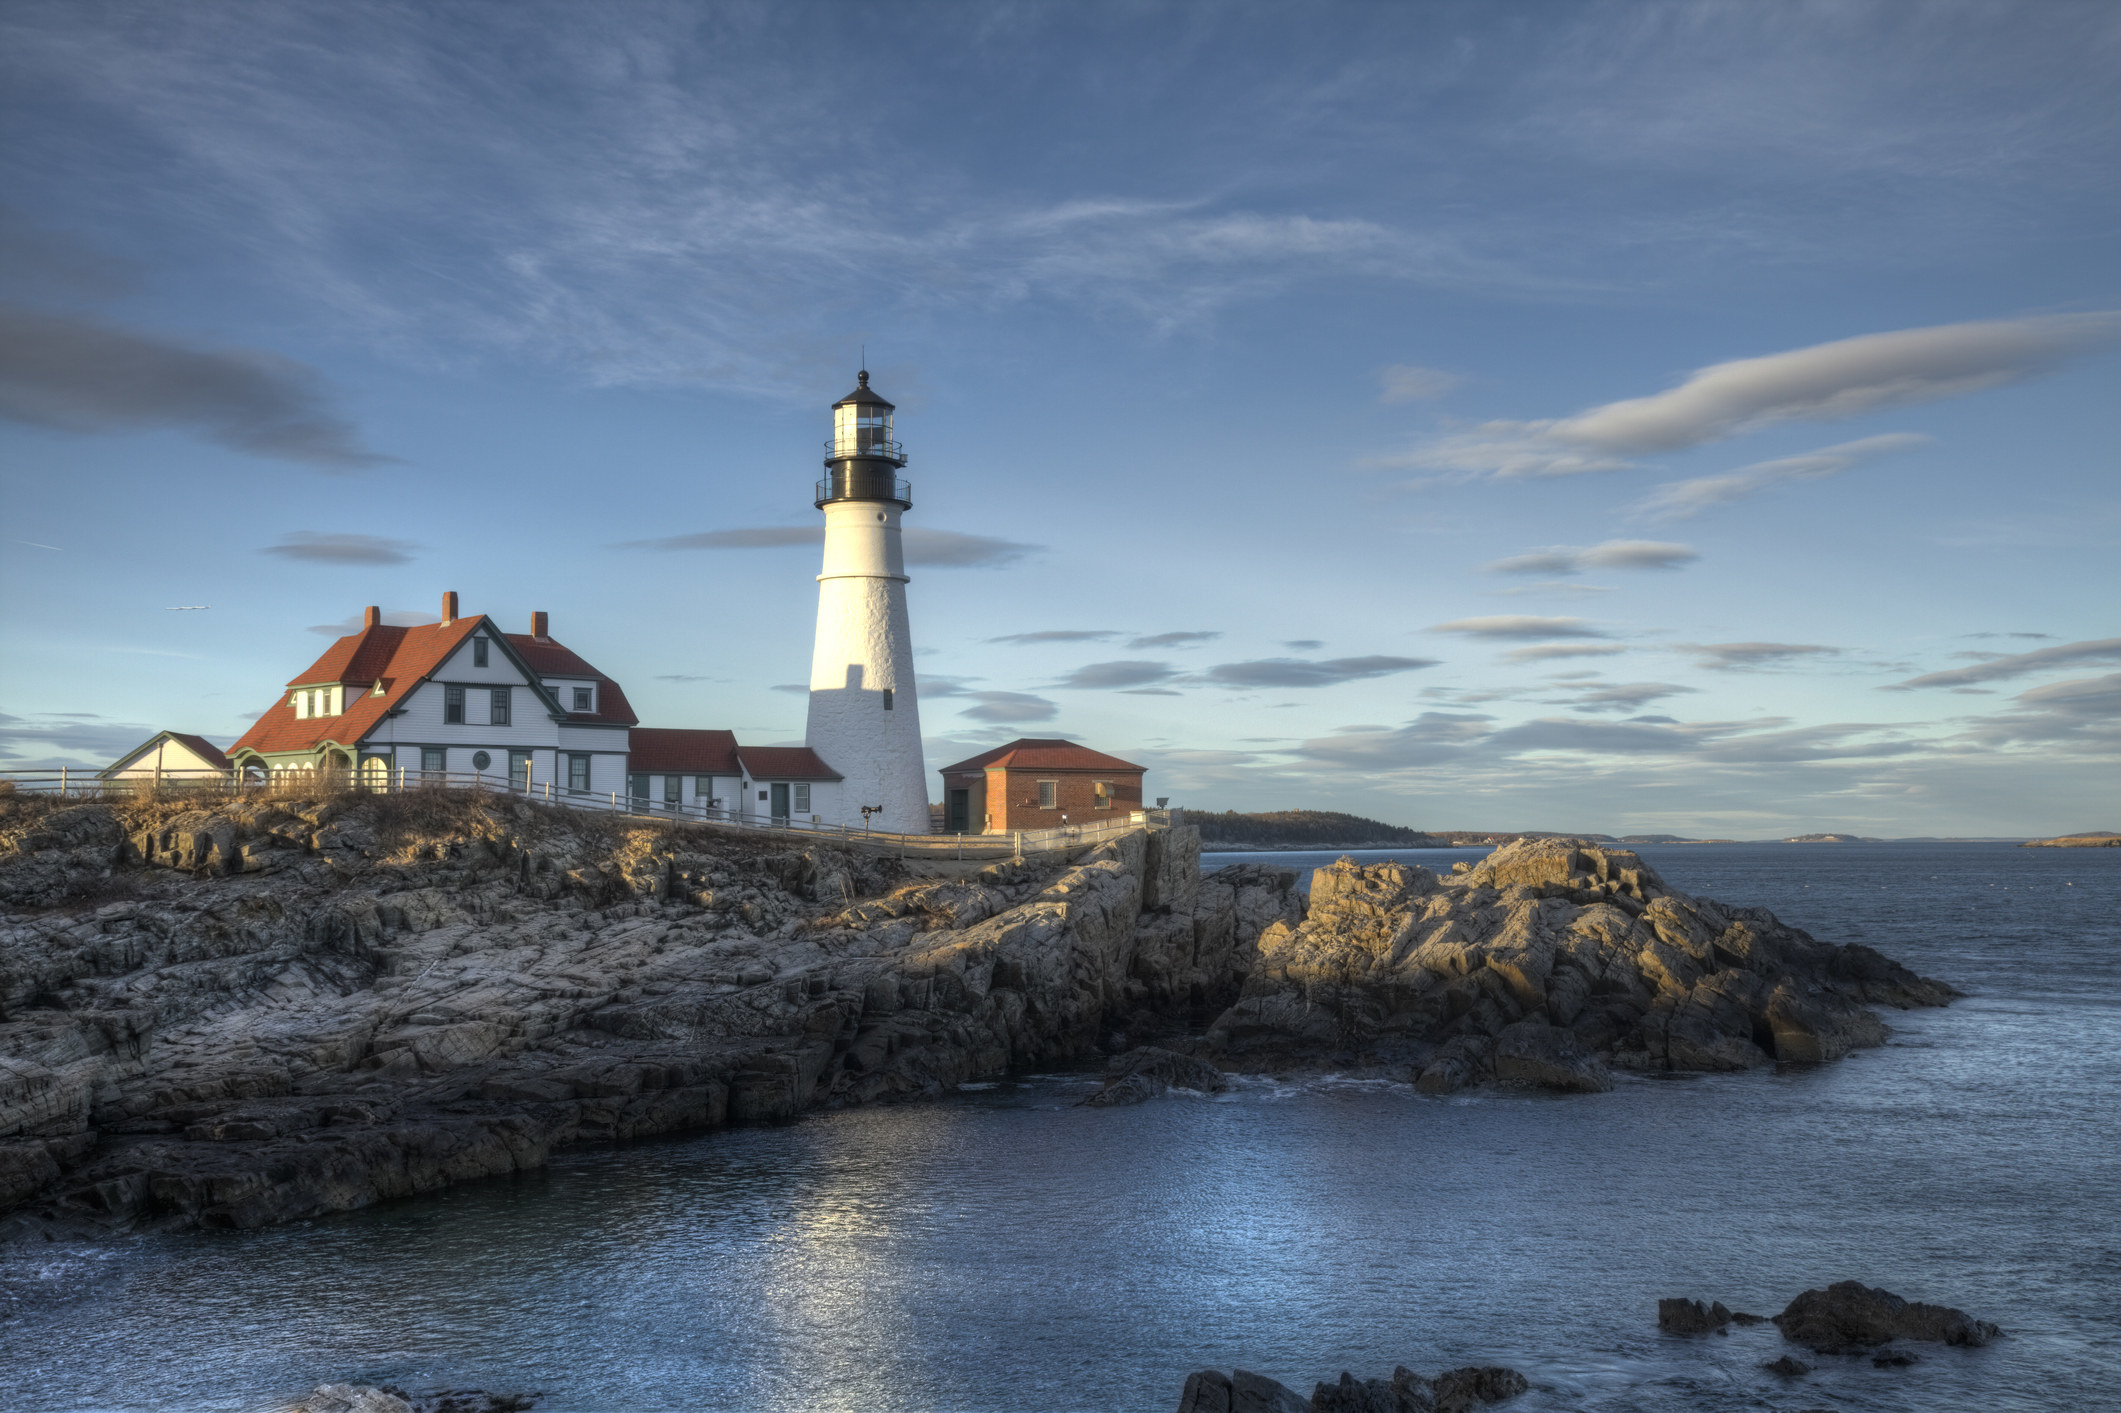 Portland Head Lighthouse under an almost-sunset sky